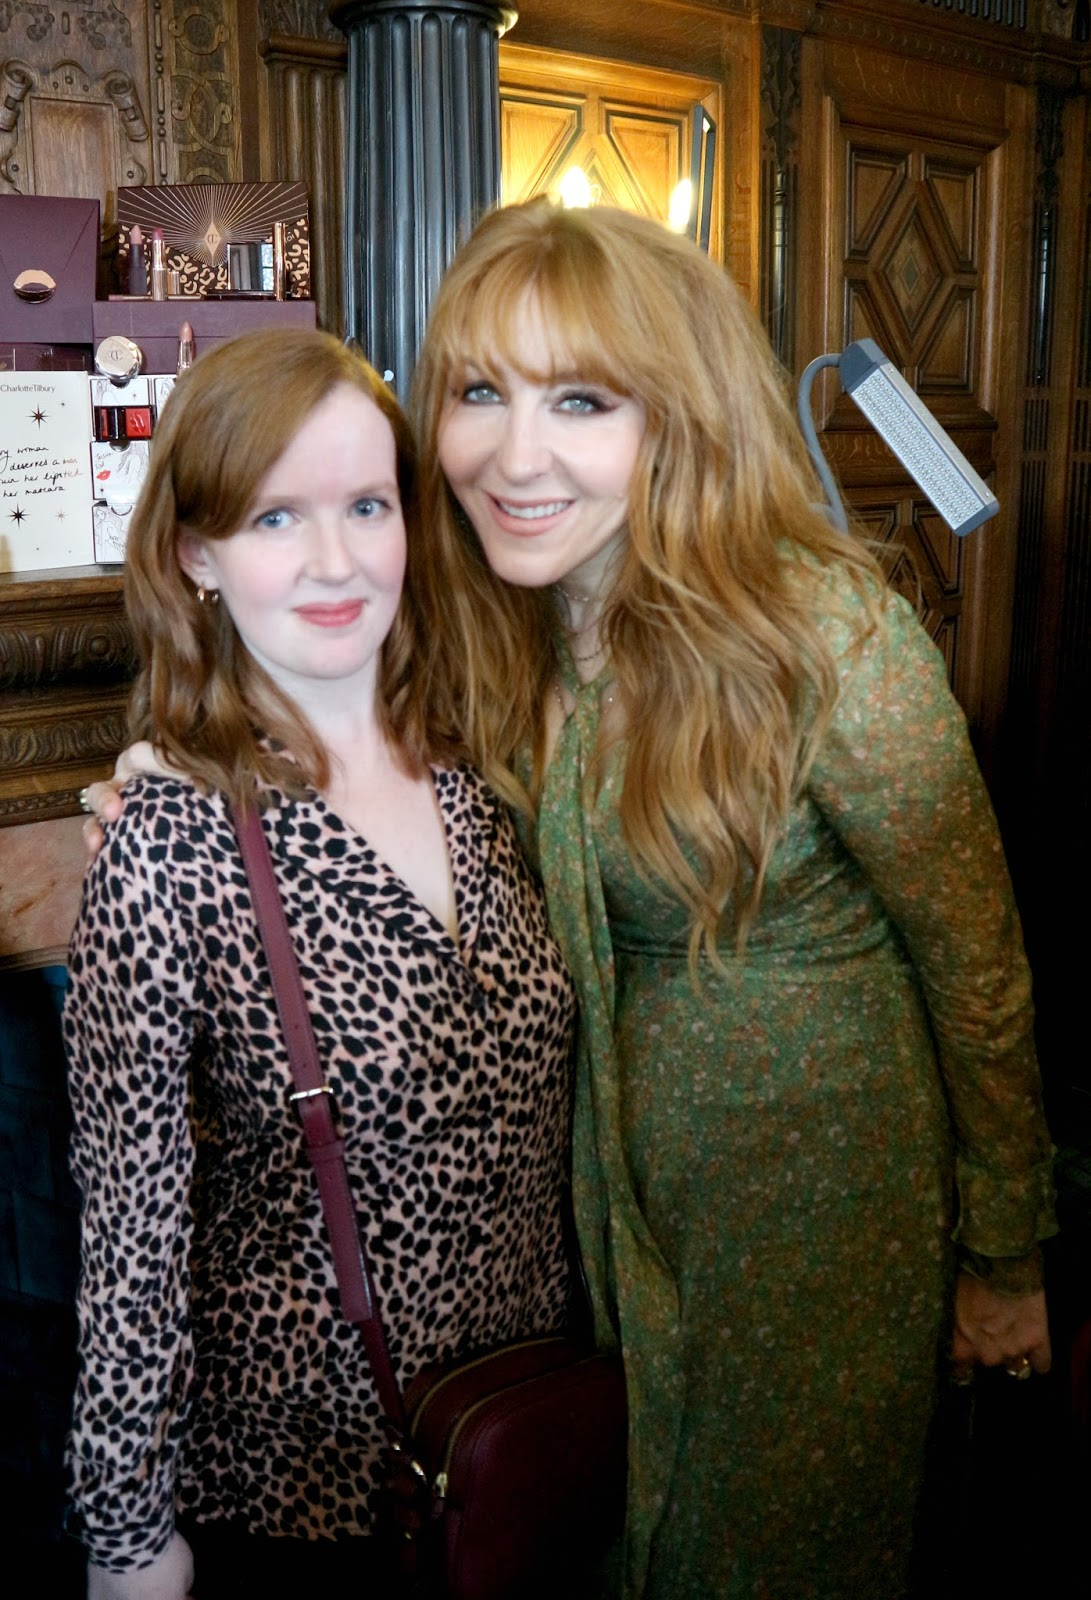 Meeting Charlotte Tilbury